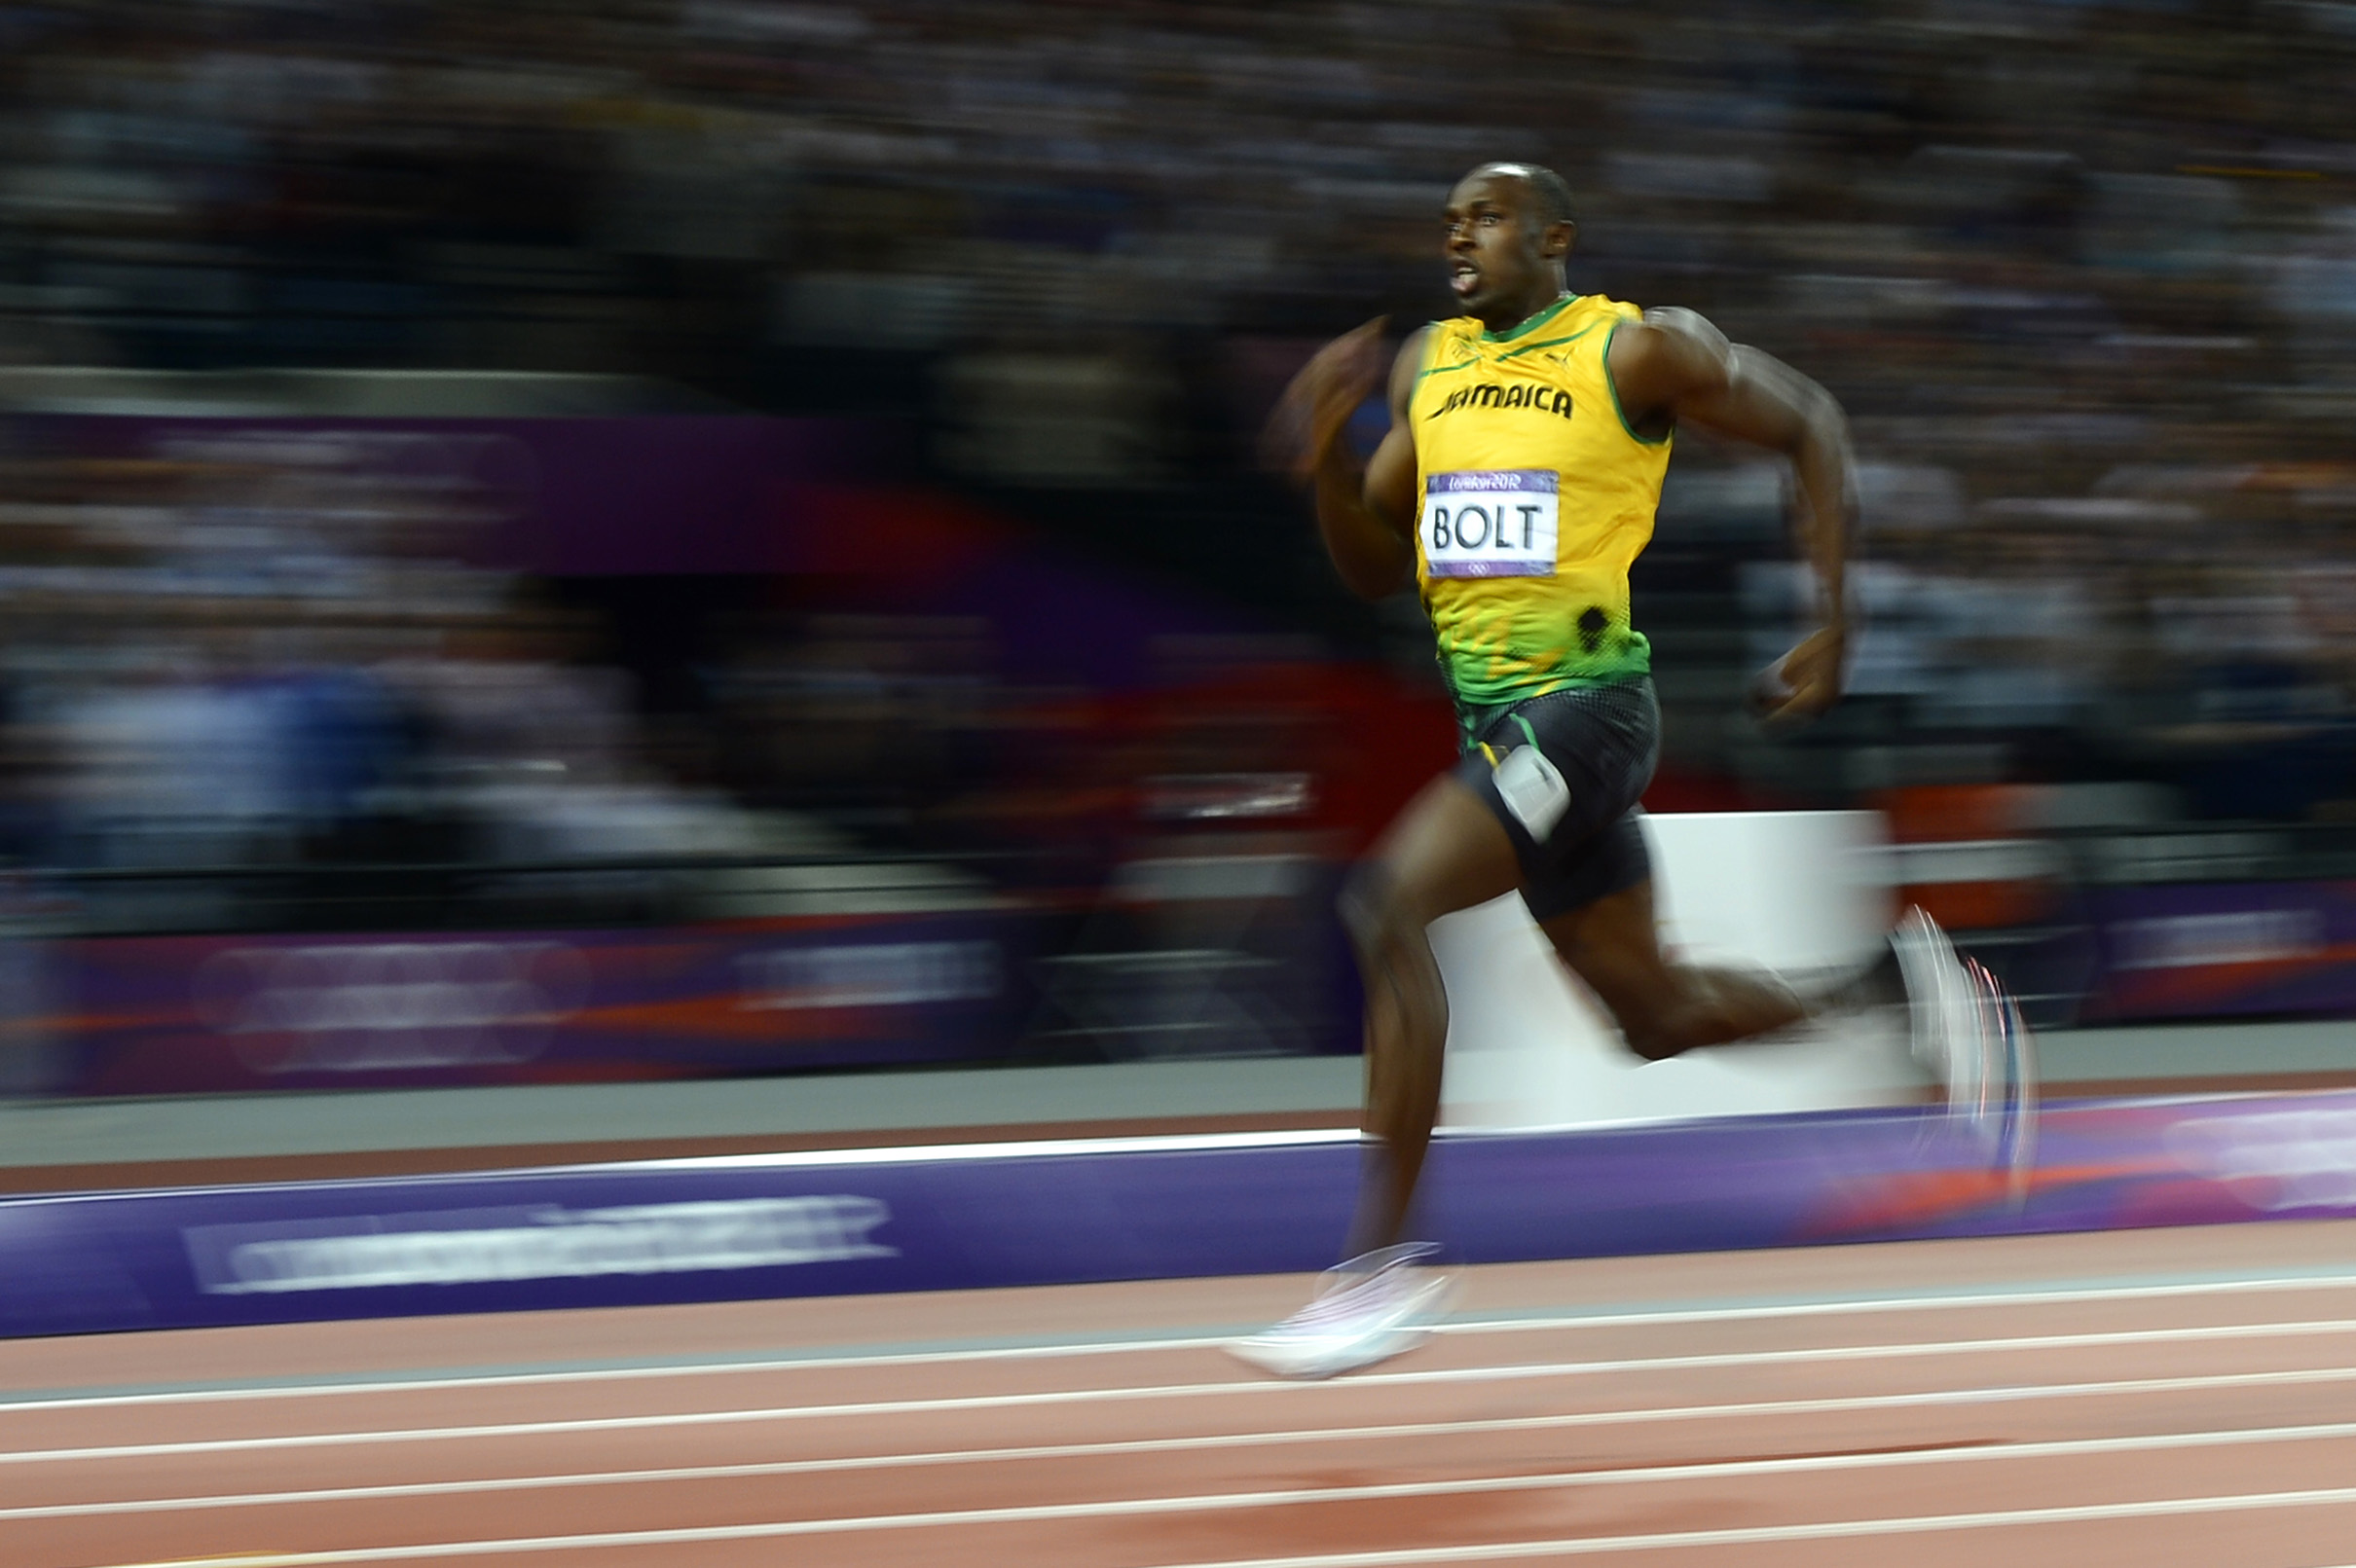 When will Bolt's record be beaten? | 1843